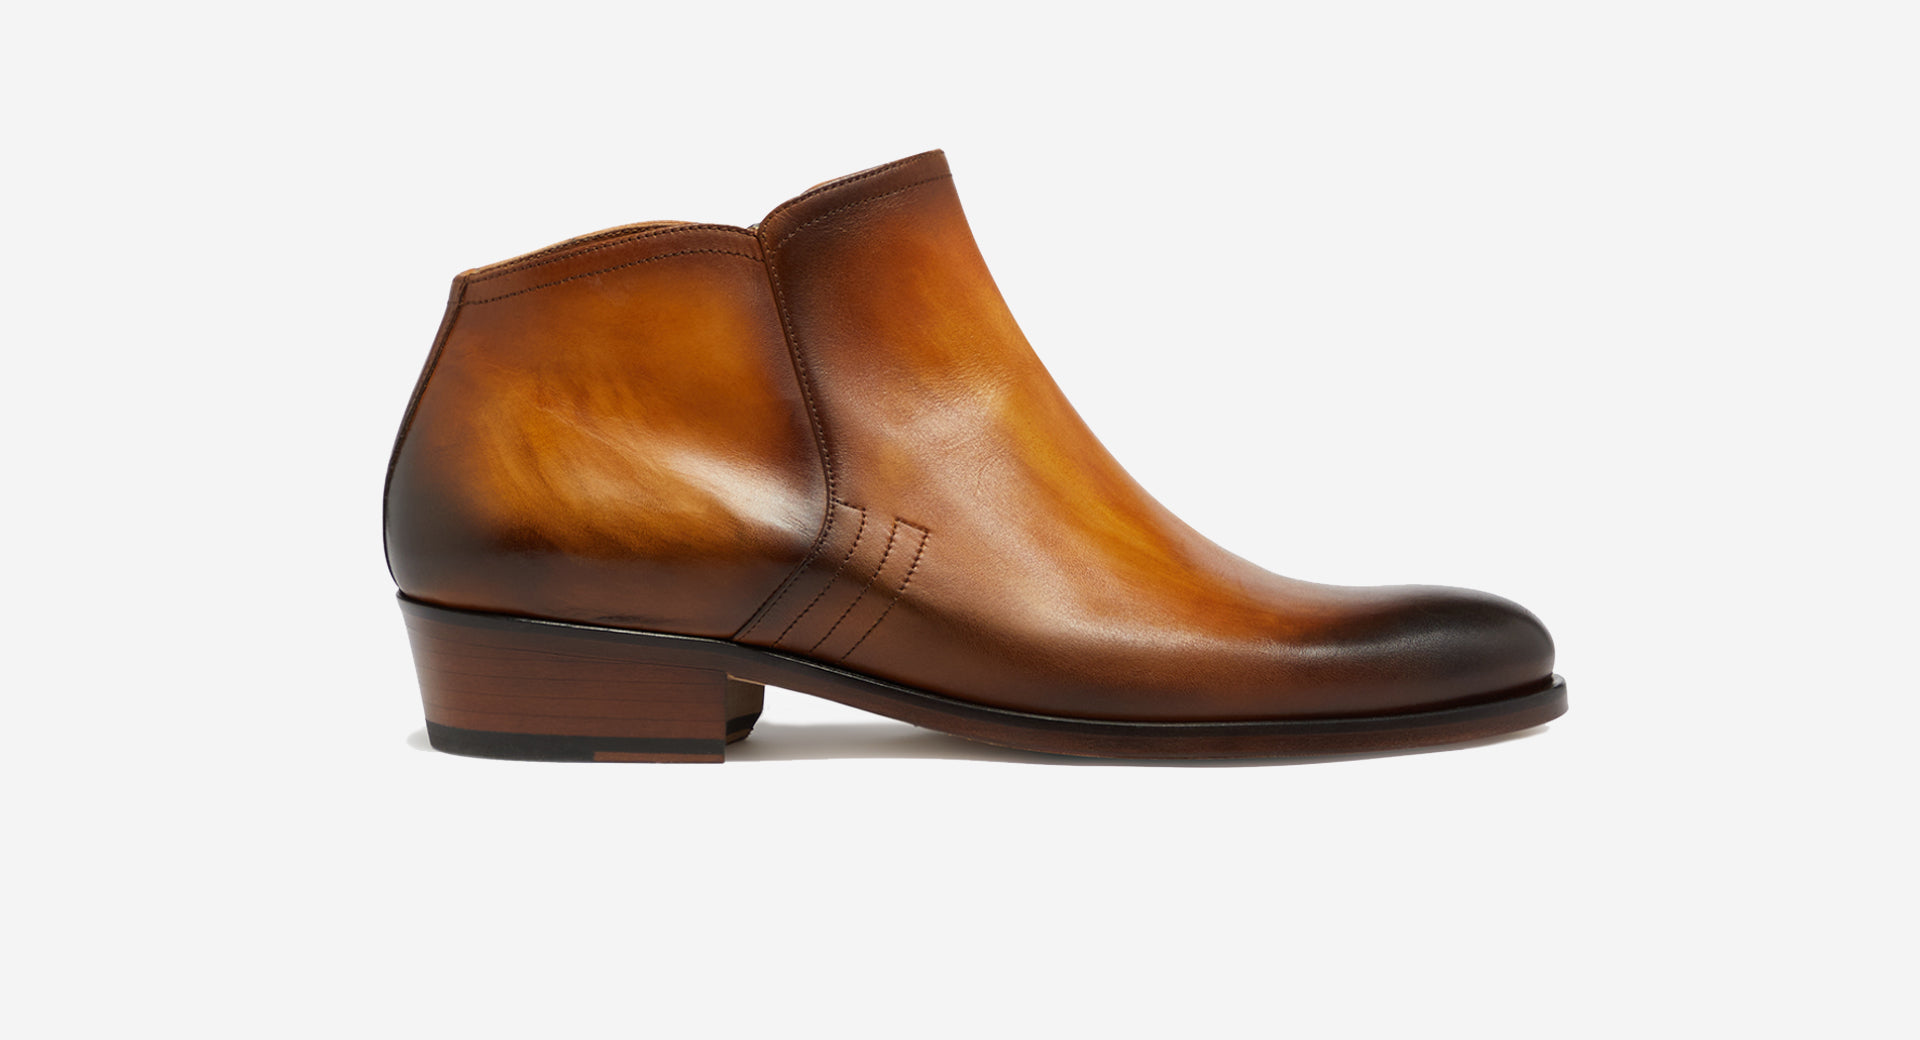 The Friday Boot